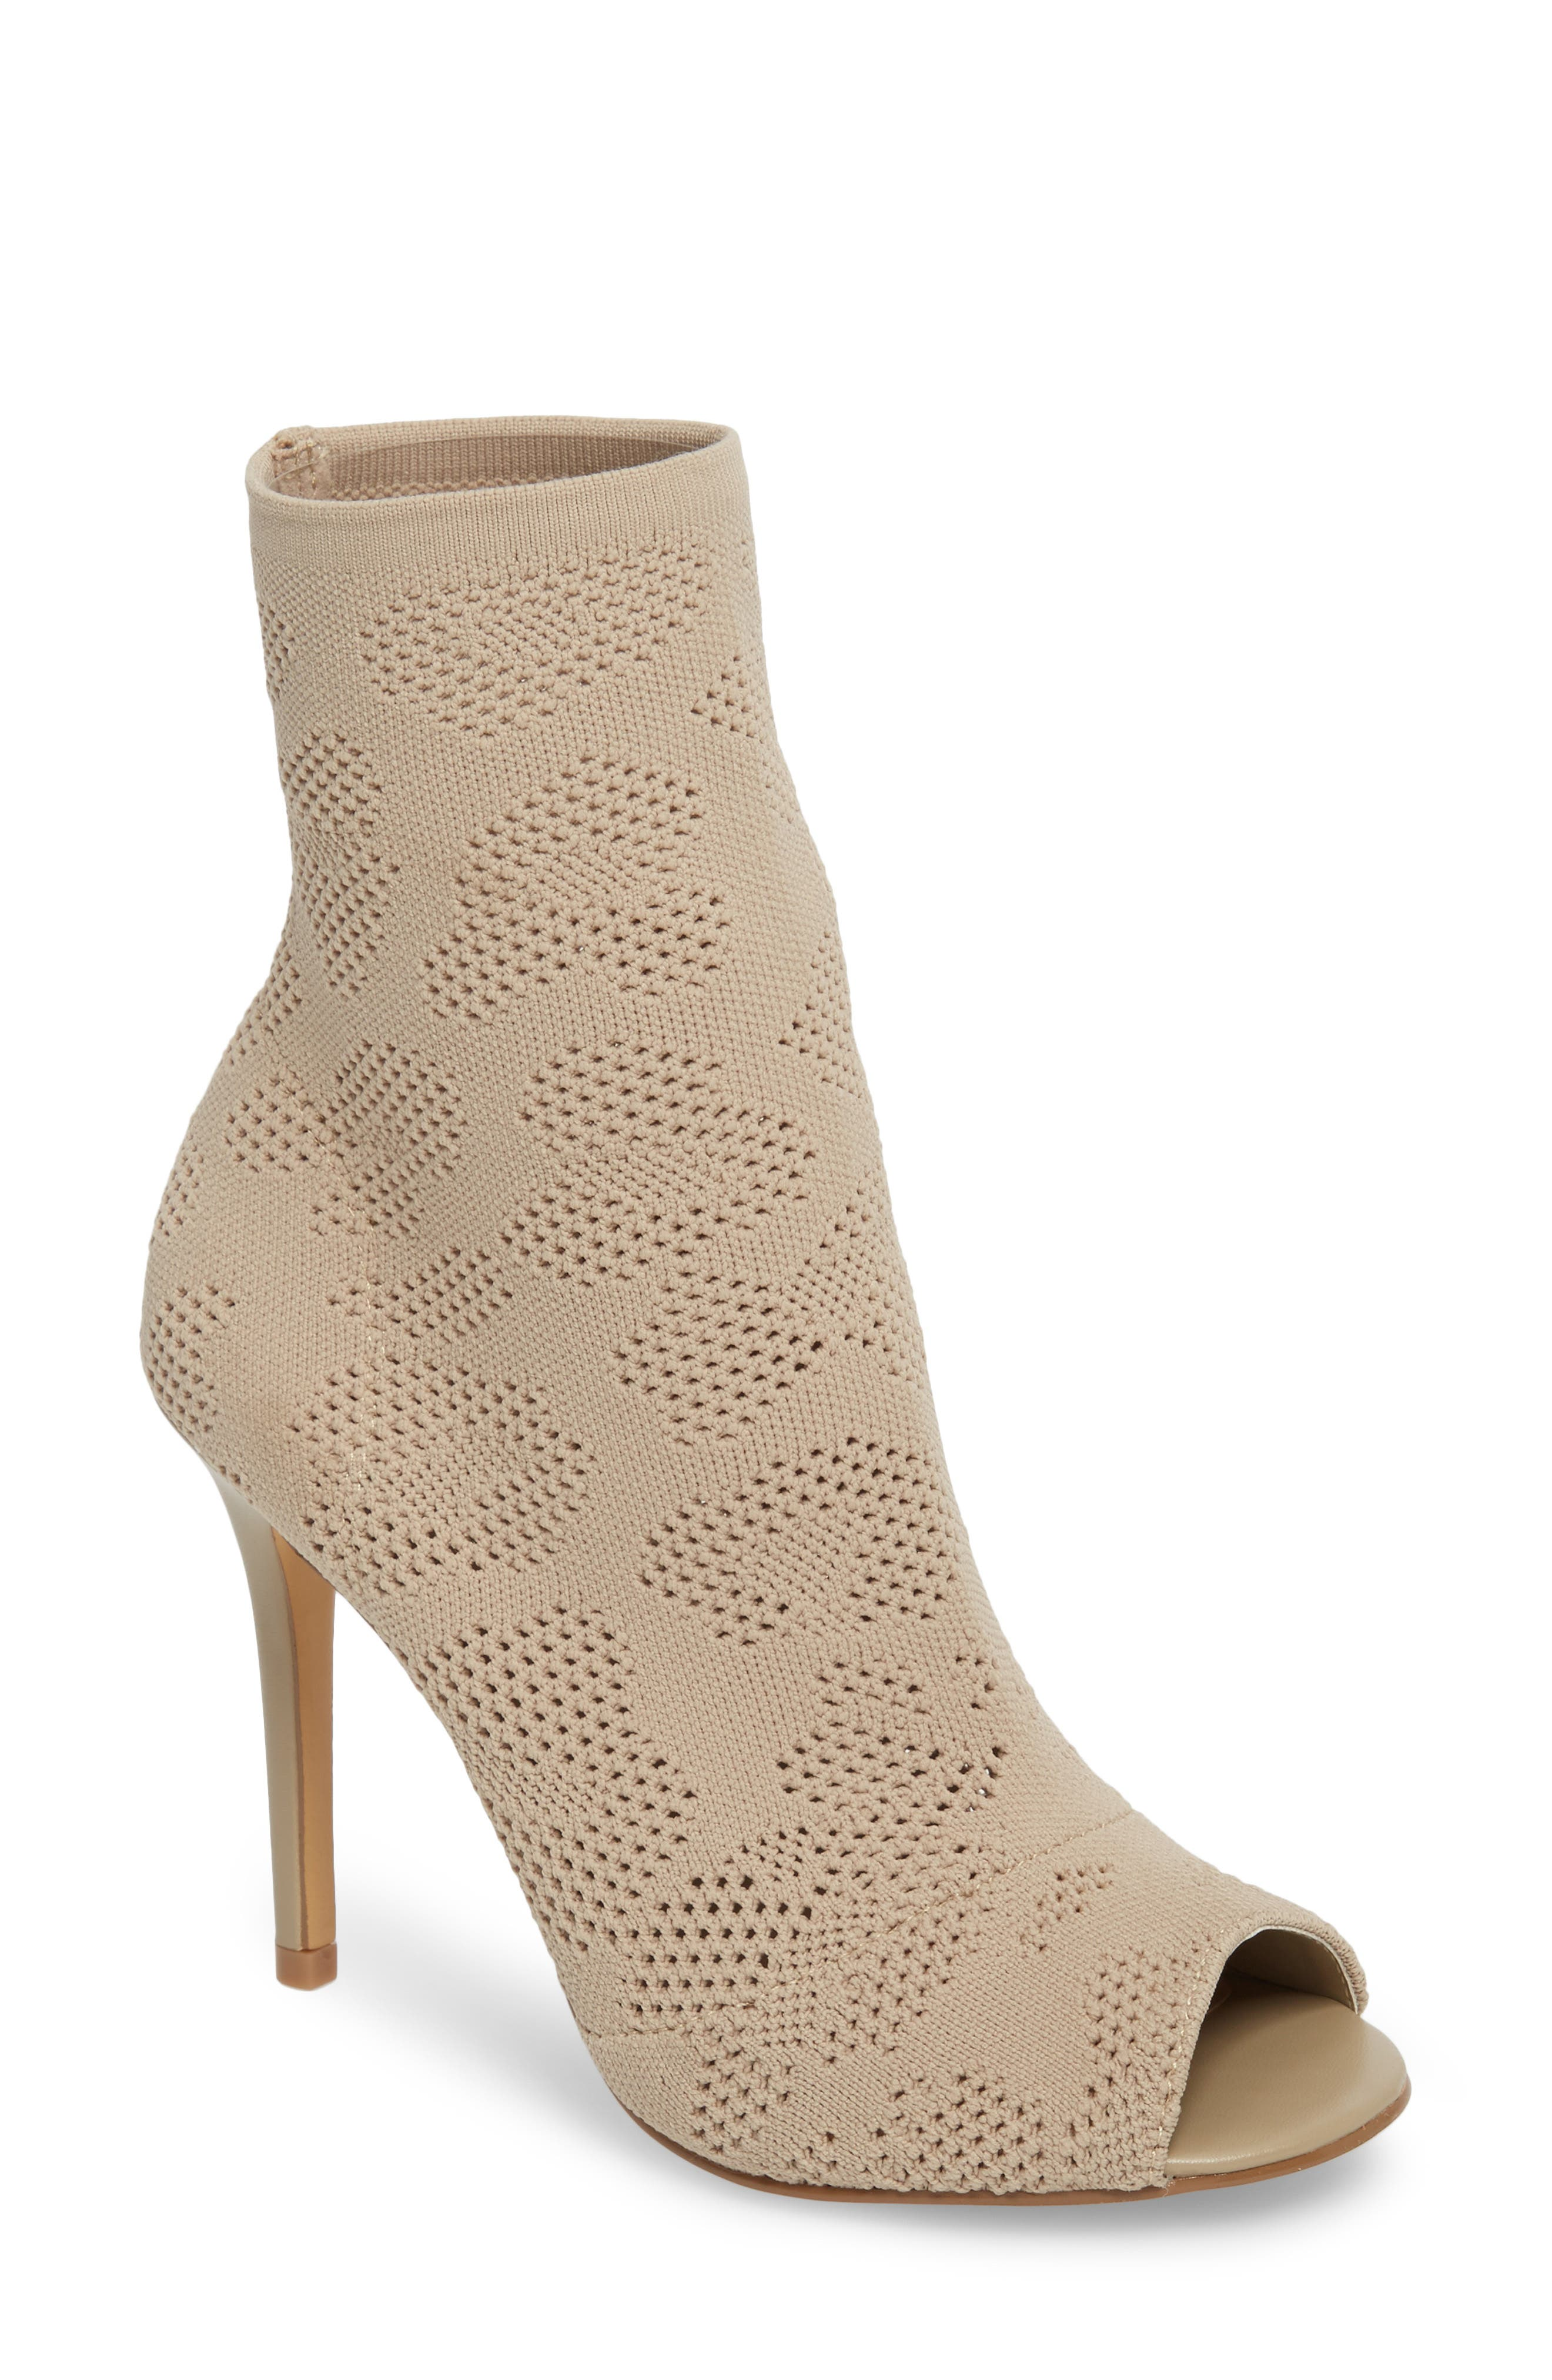 Ranger Sock Knit Open Toe Bootie,                         Main,                         color, Nude Stretch Fabric